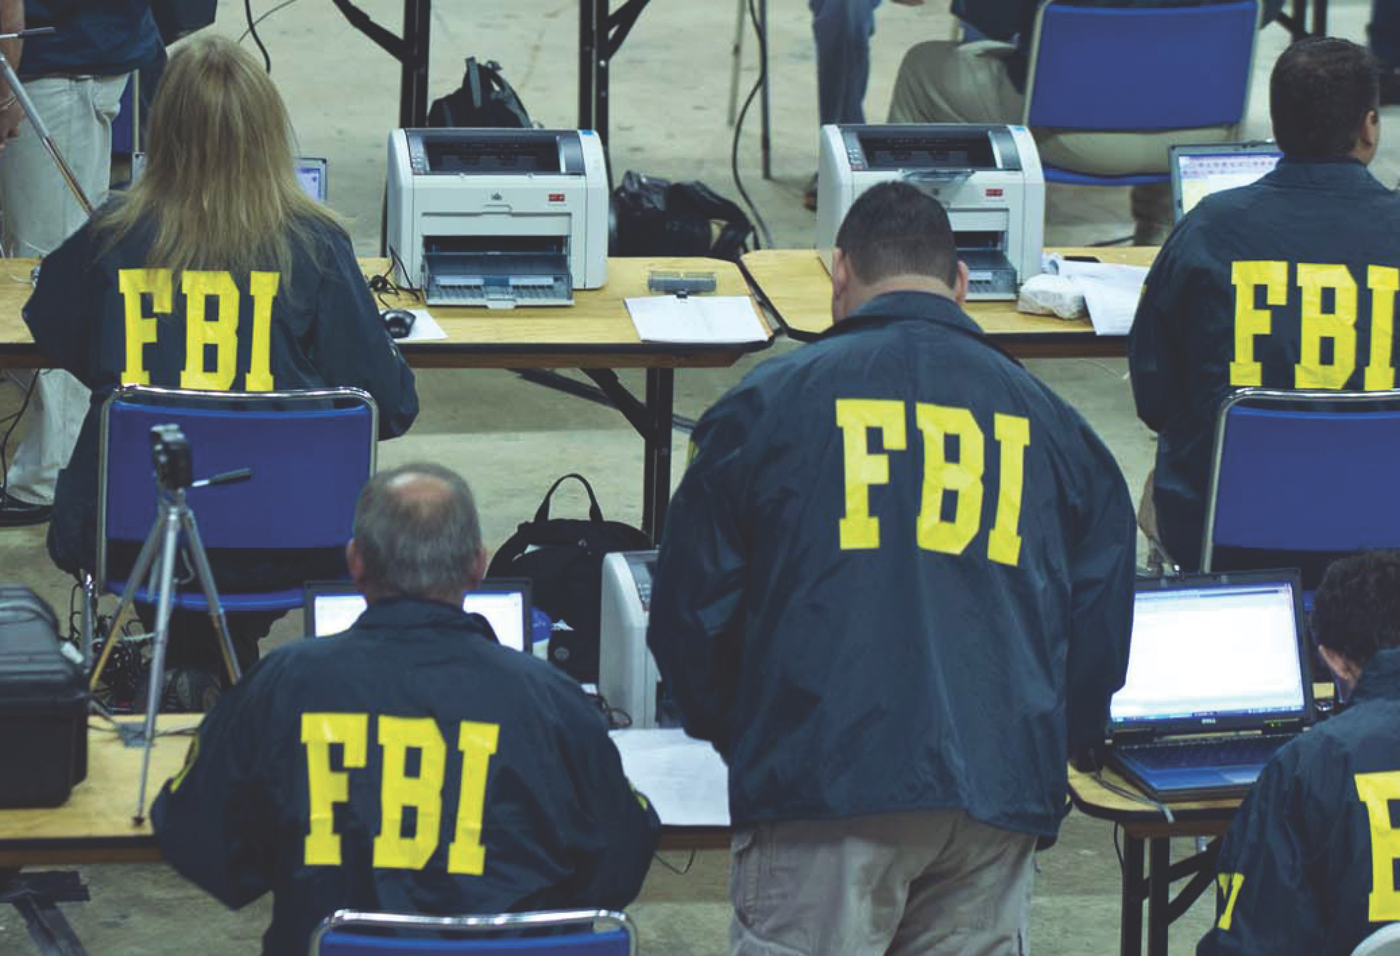 FBI Personnel in San Juan